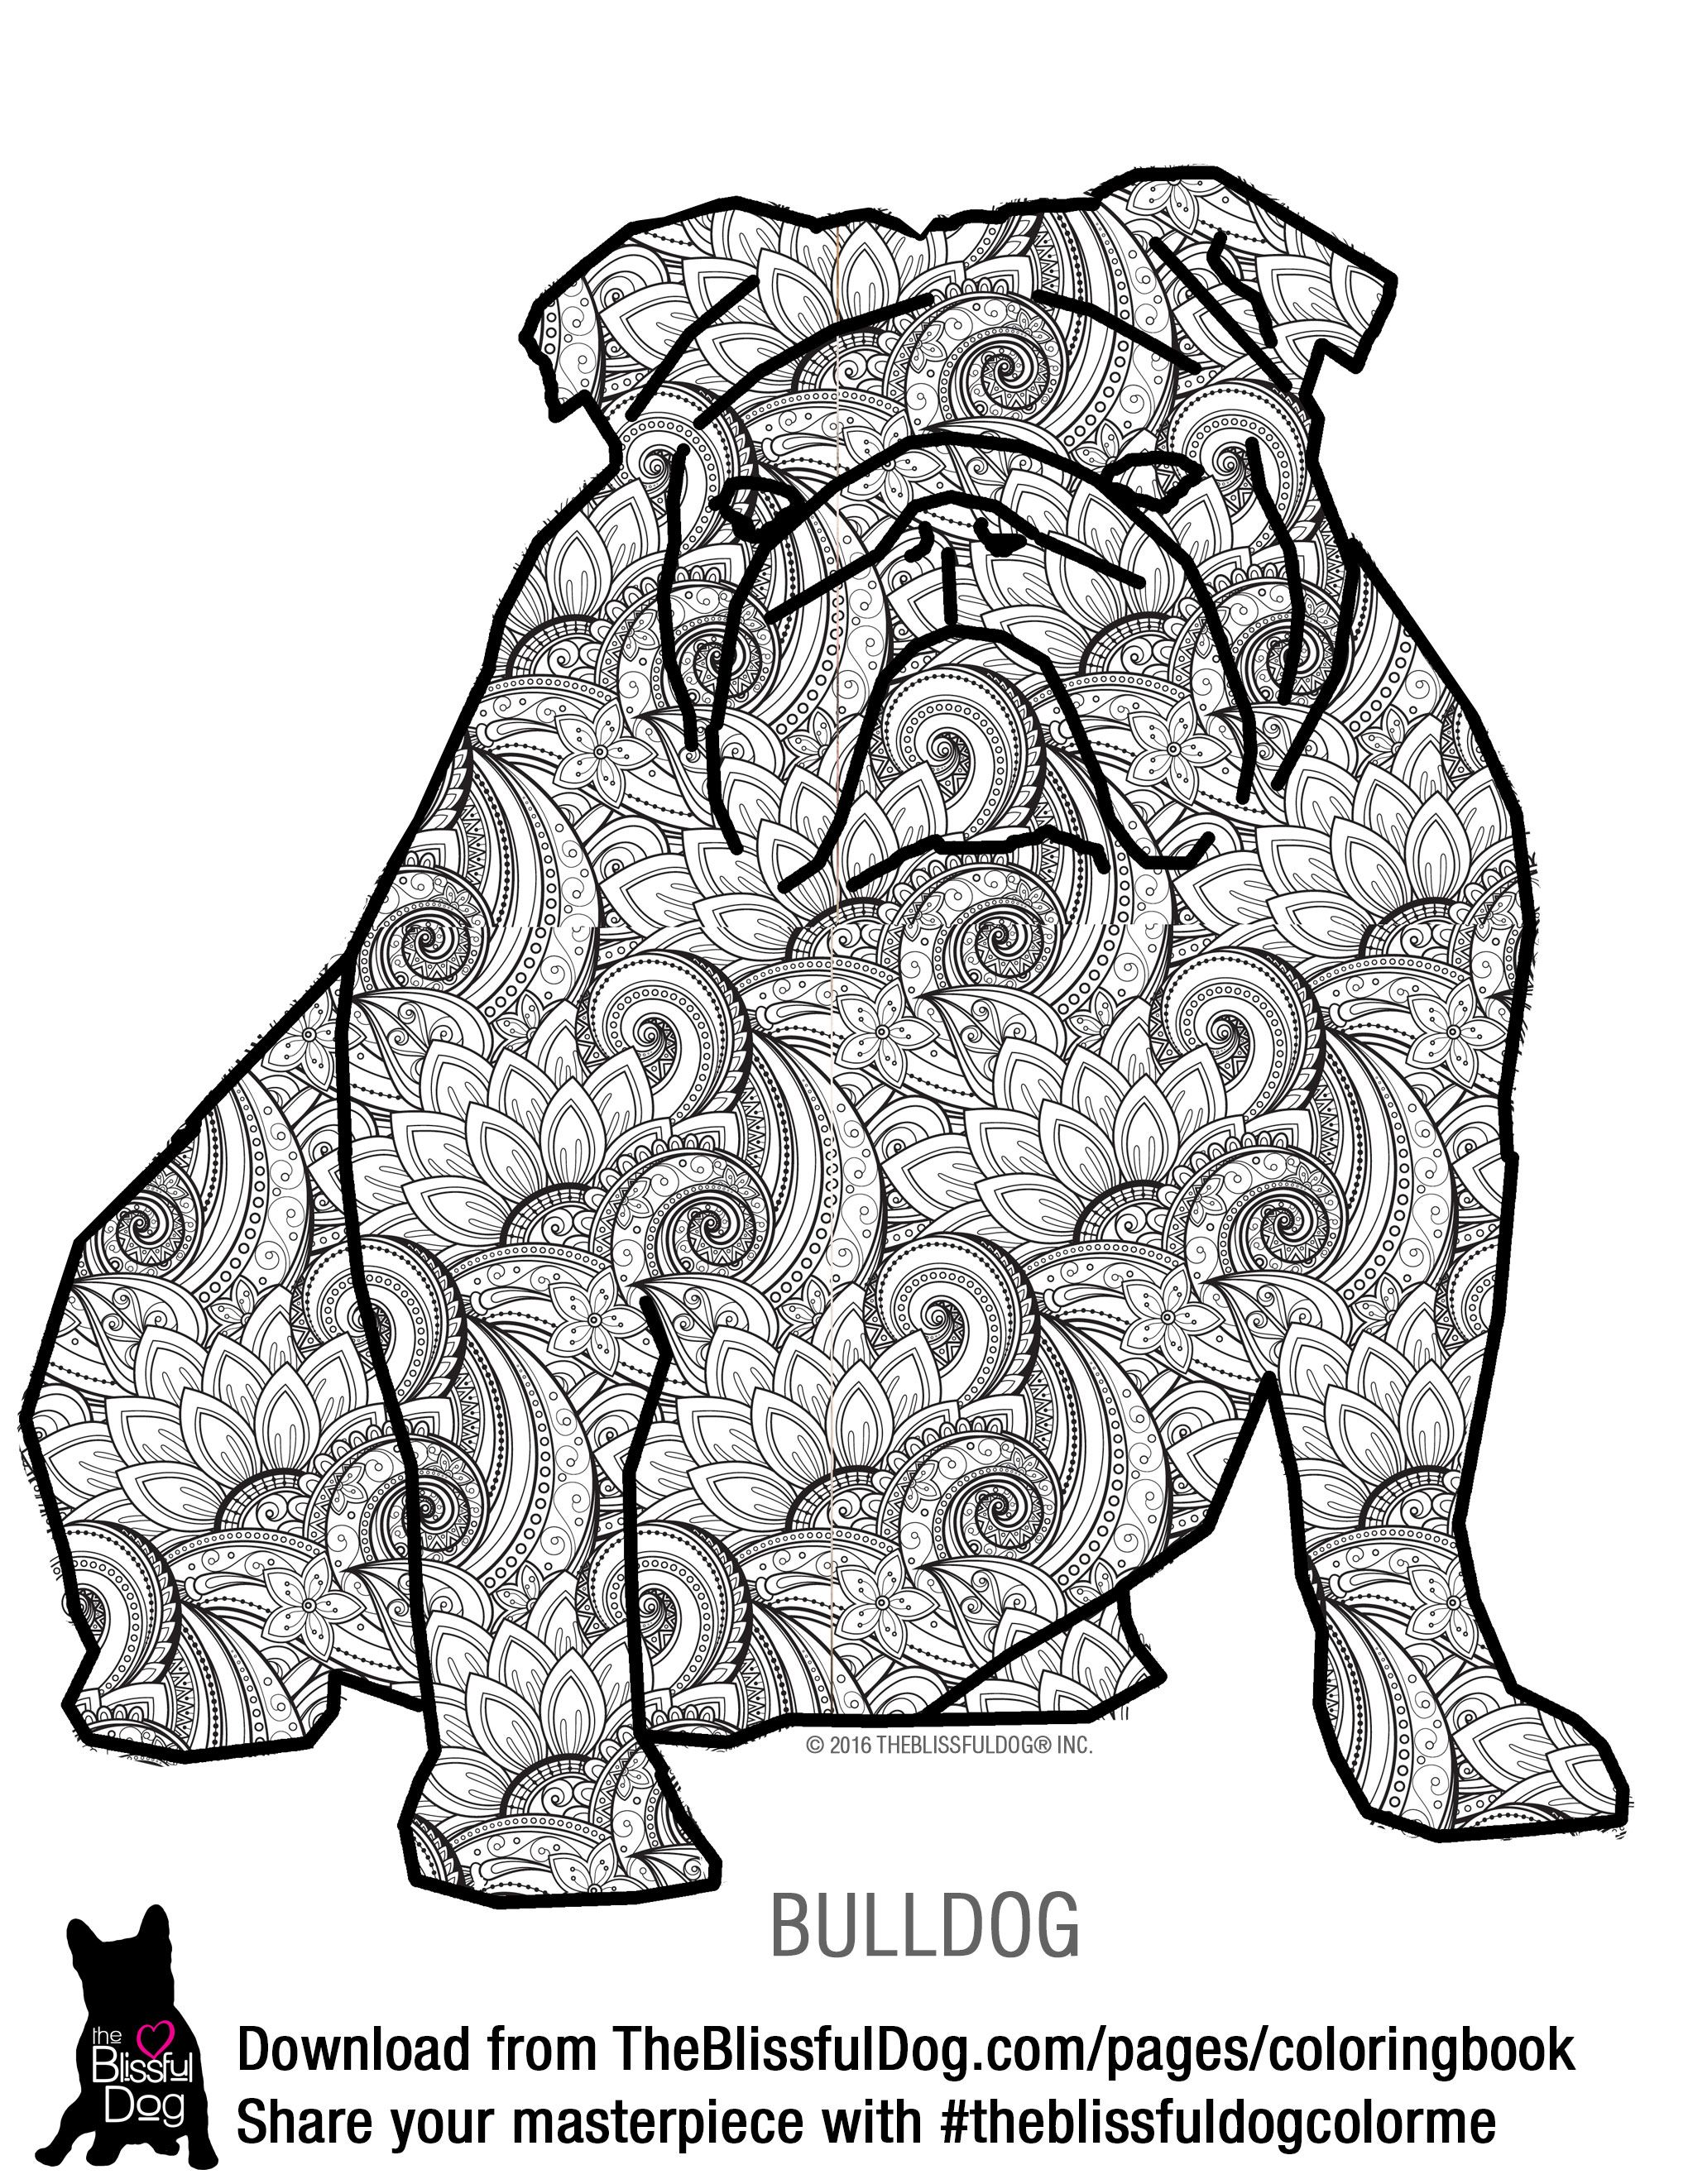 Here is the Bulldog Coloring Book Page big file for high